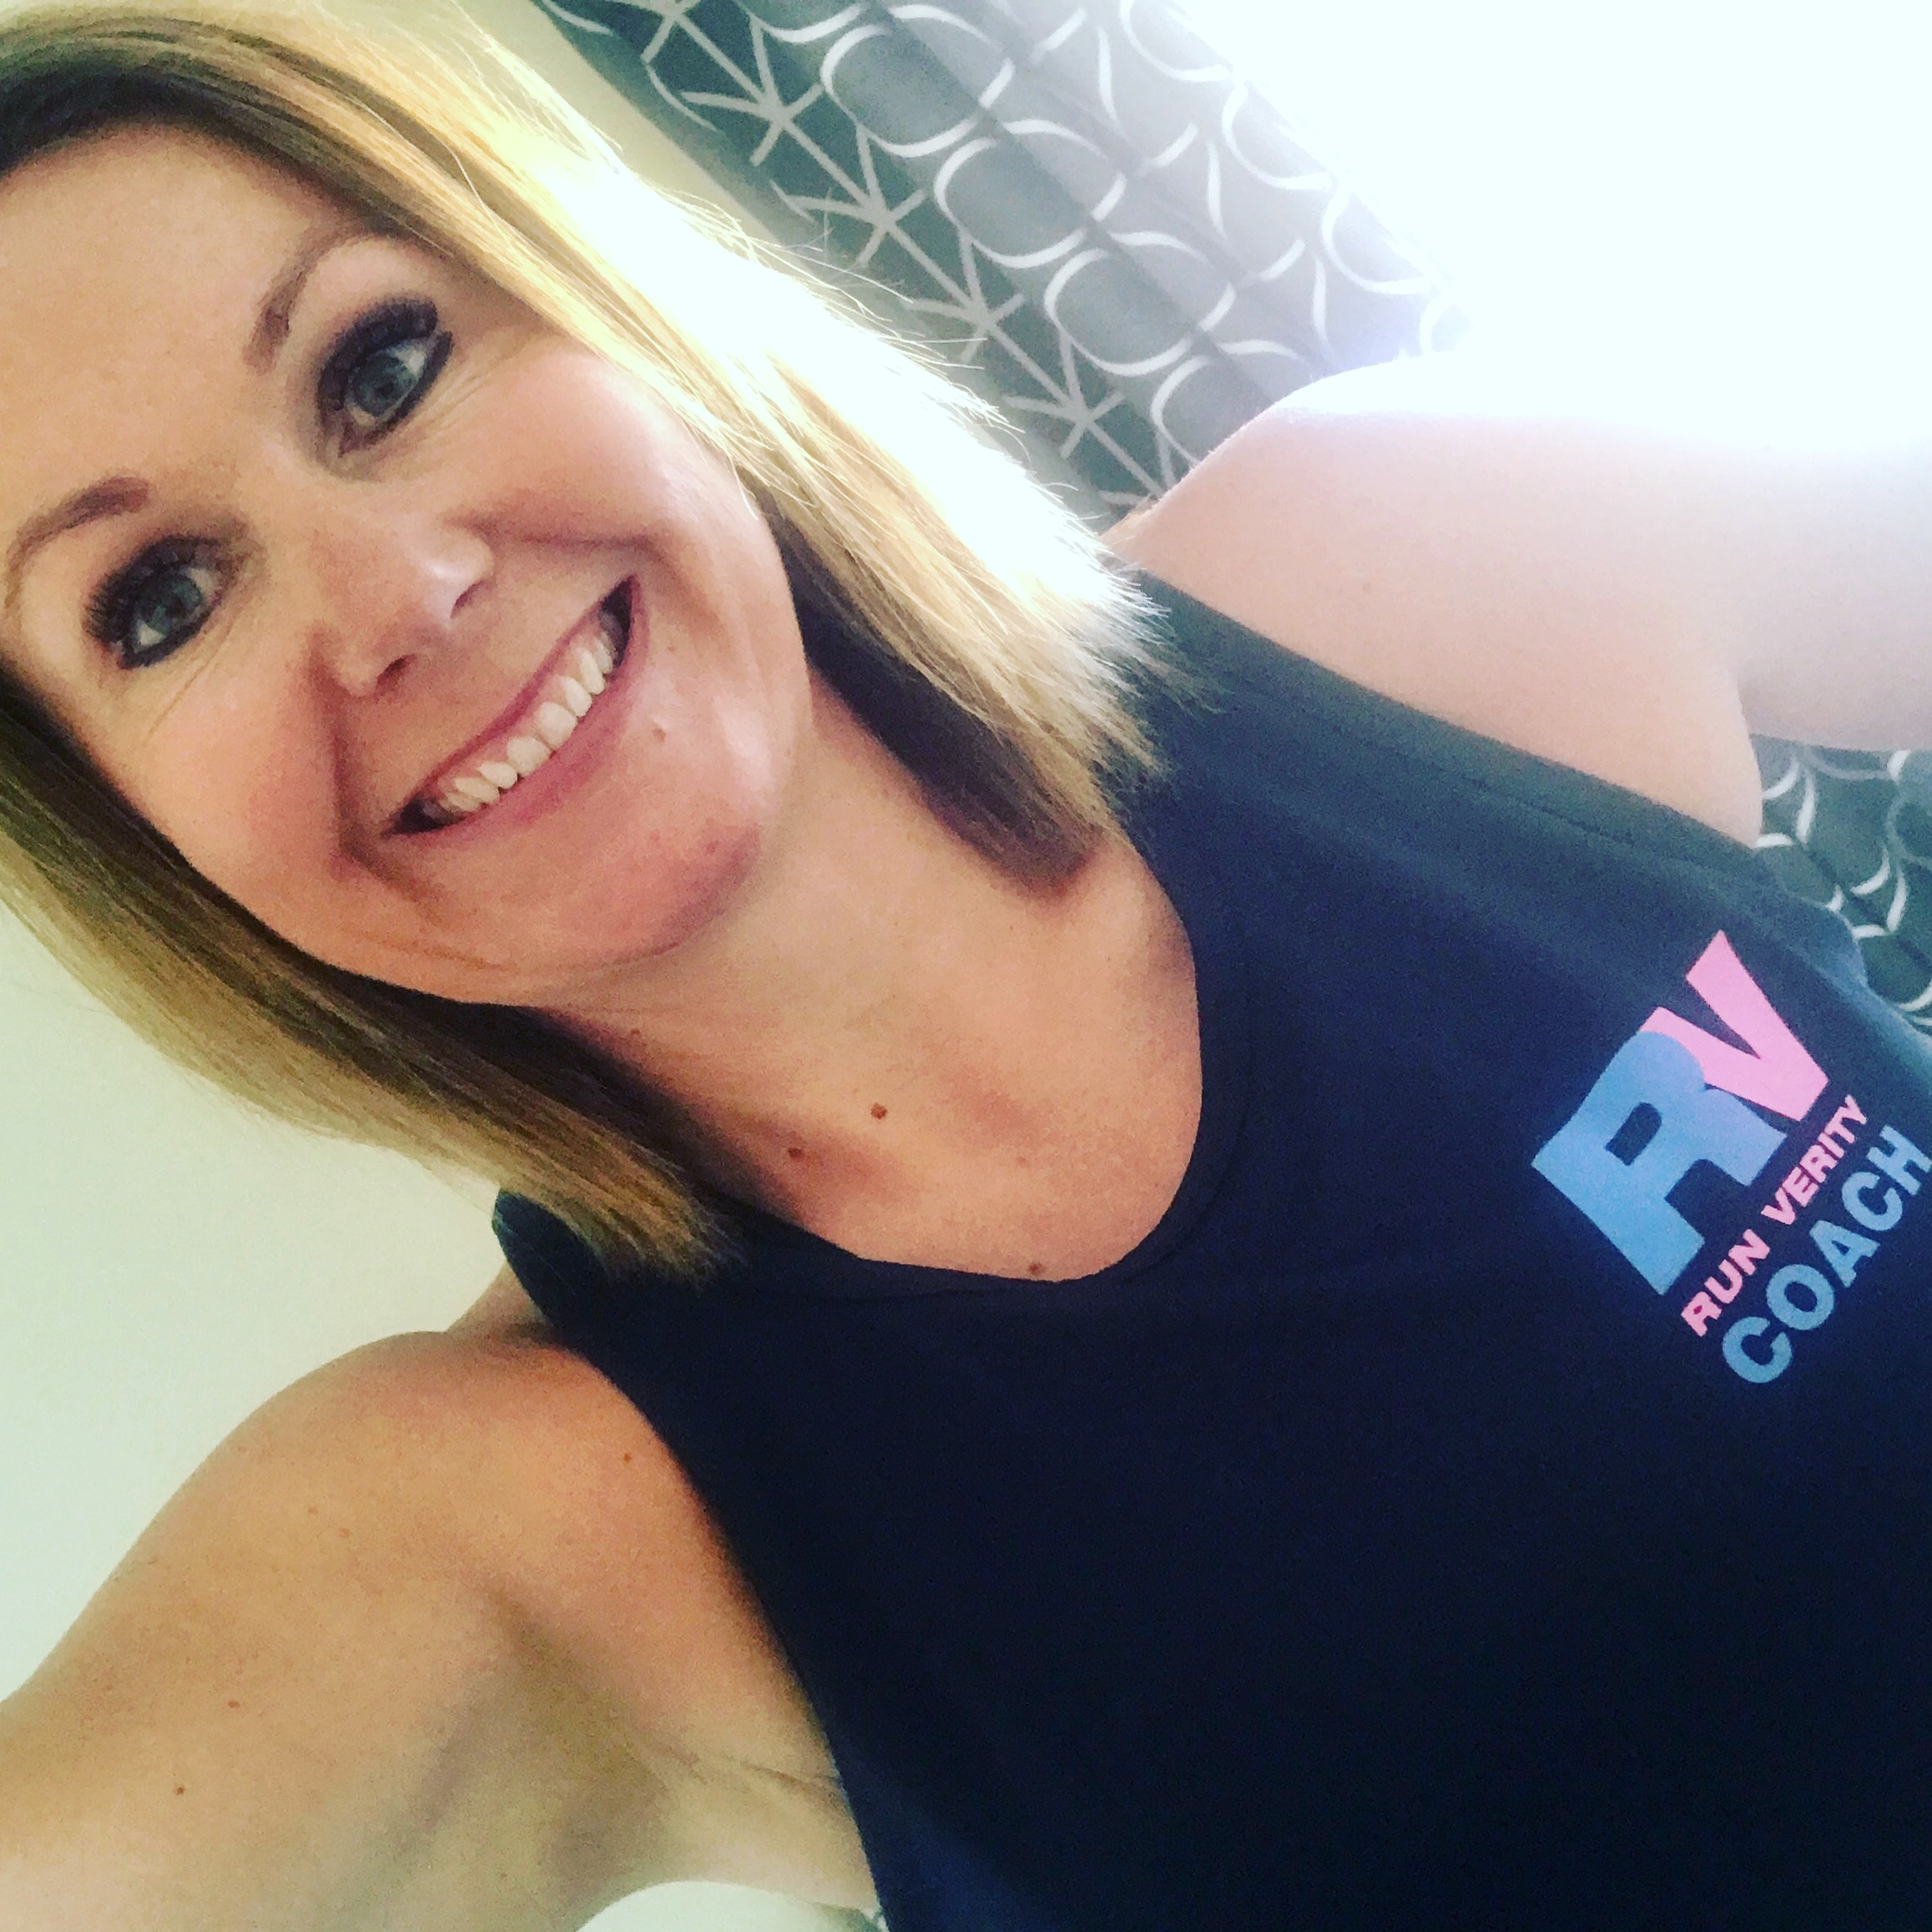 Why RunVerity - My team and I at RunVerity are here to help you achieve your running goals, whatever they are and even if you thought they would never be possible. Verity 2018